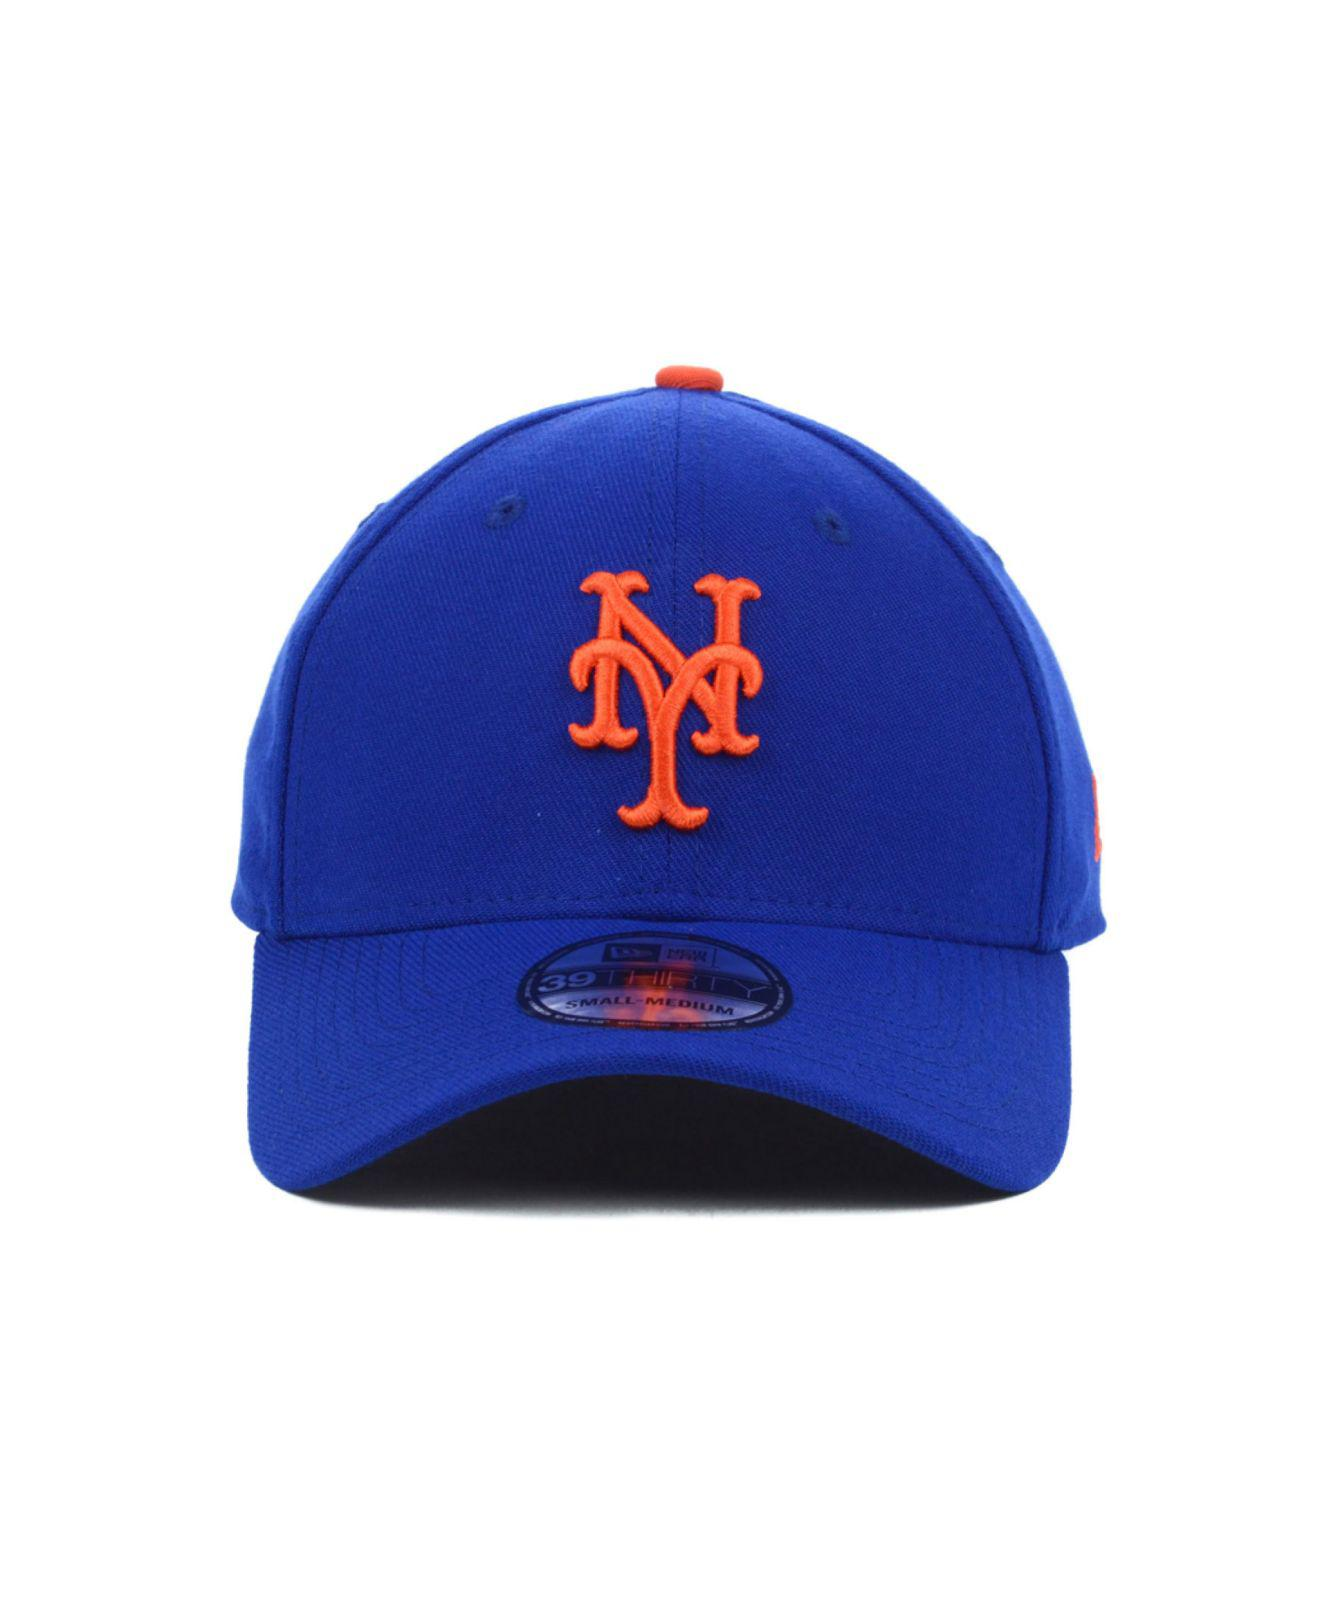 69fc4aa1f5c29d ... lyst ktz new york mets mlb team classic 39thirty cap in blue for men